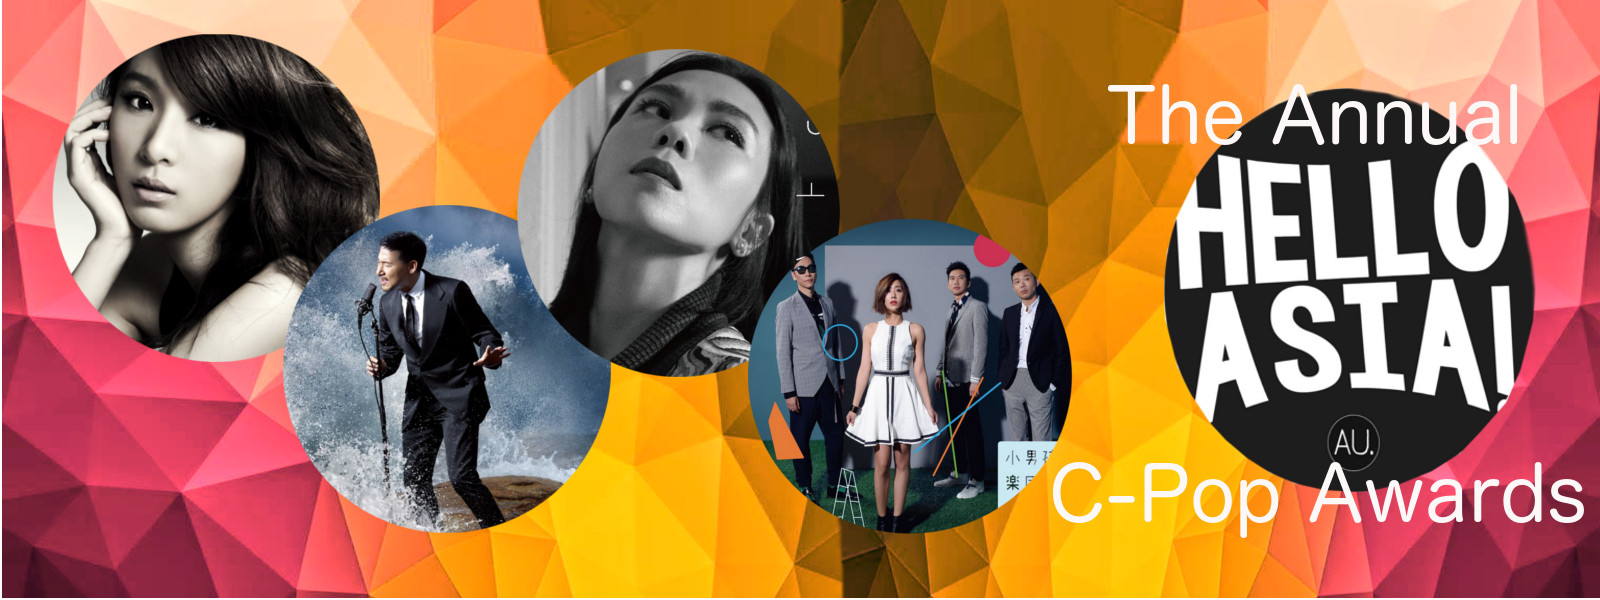 2015 Hello Asia! C-Pop Awards – Nominees Revealed!